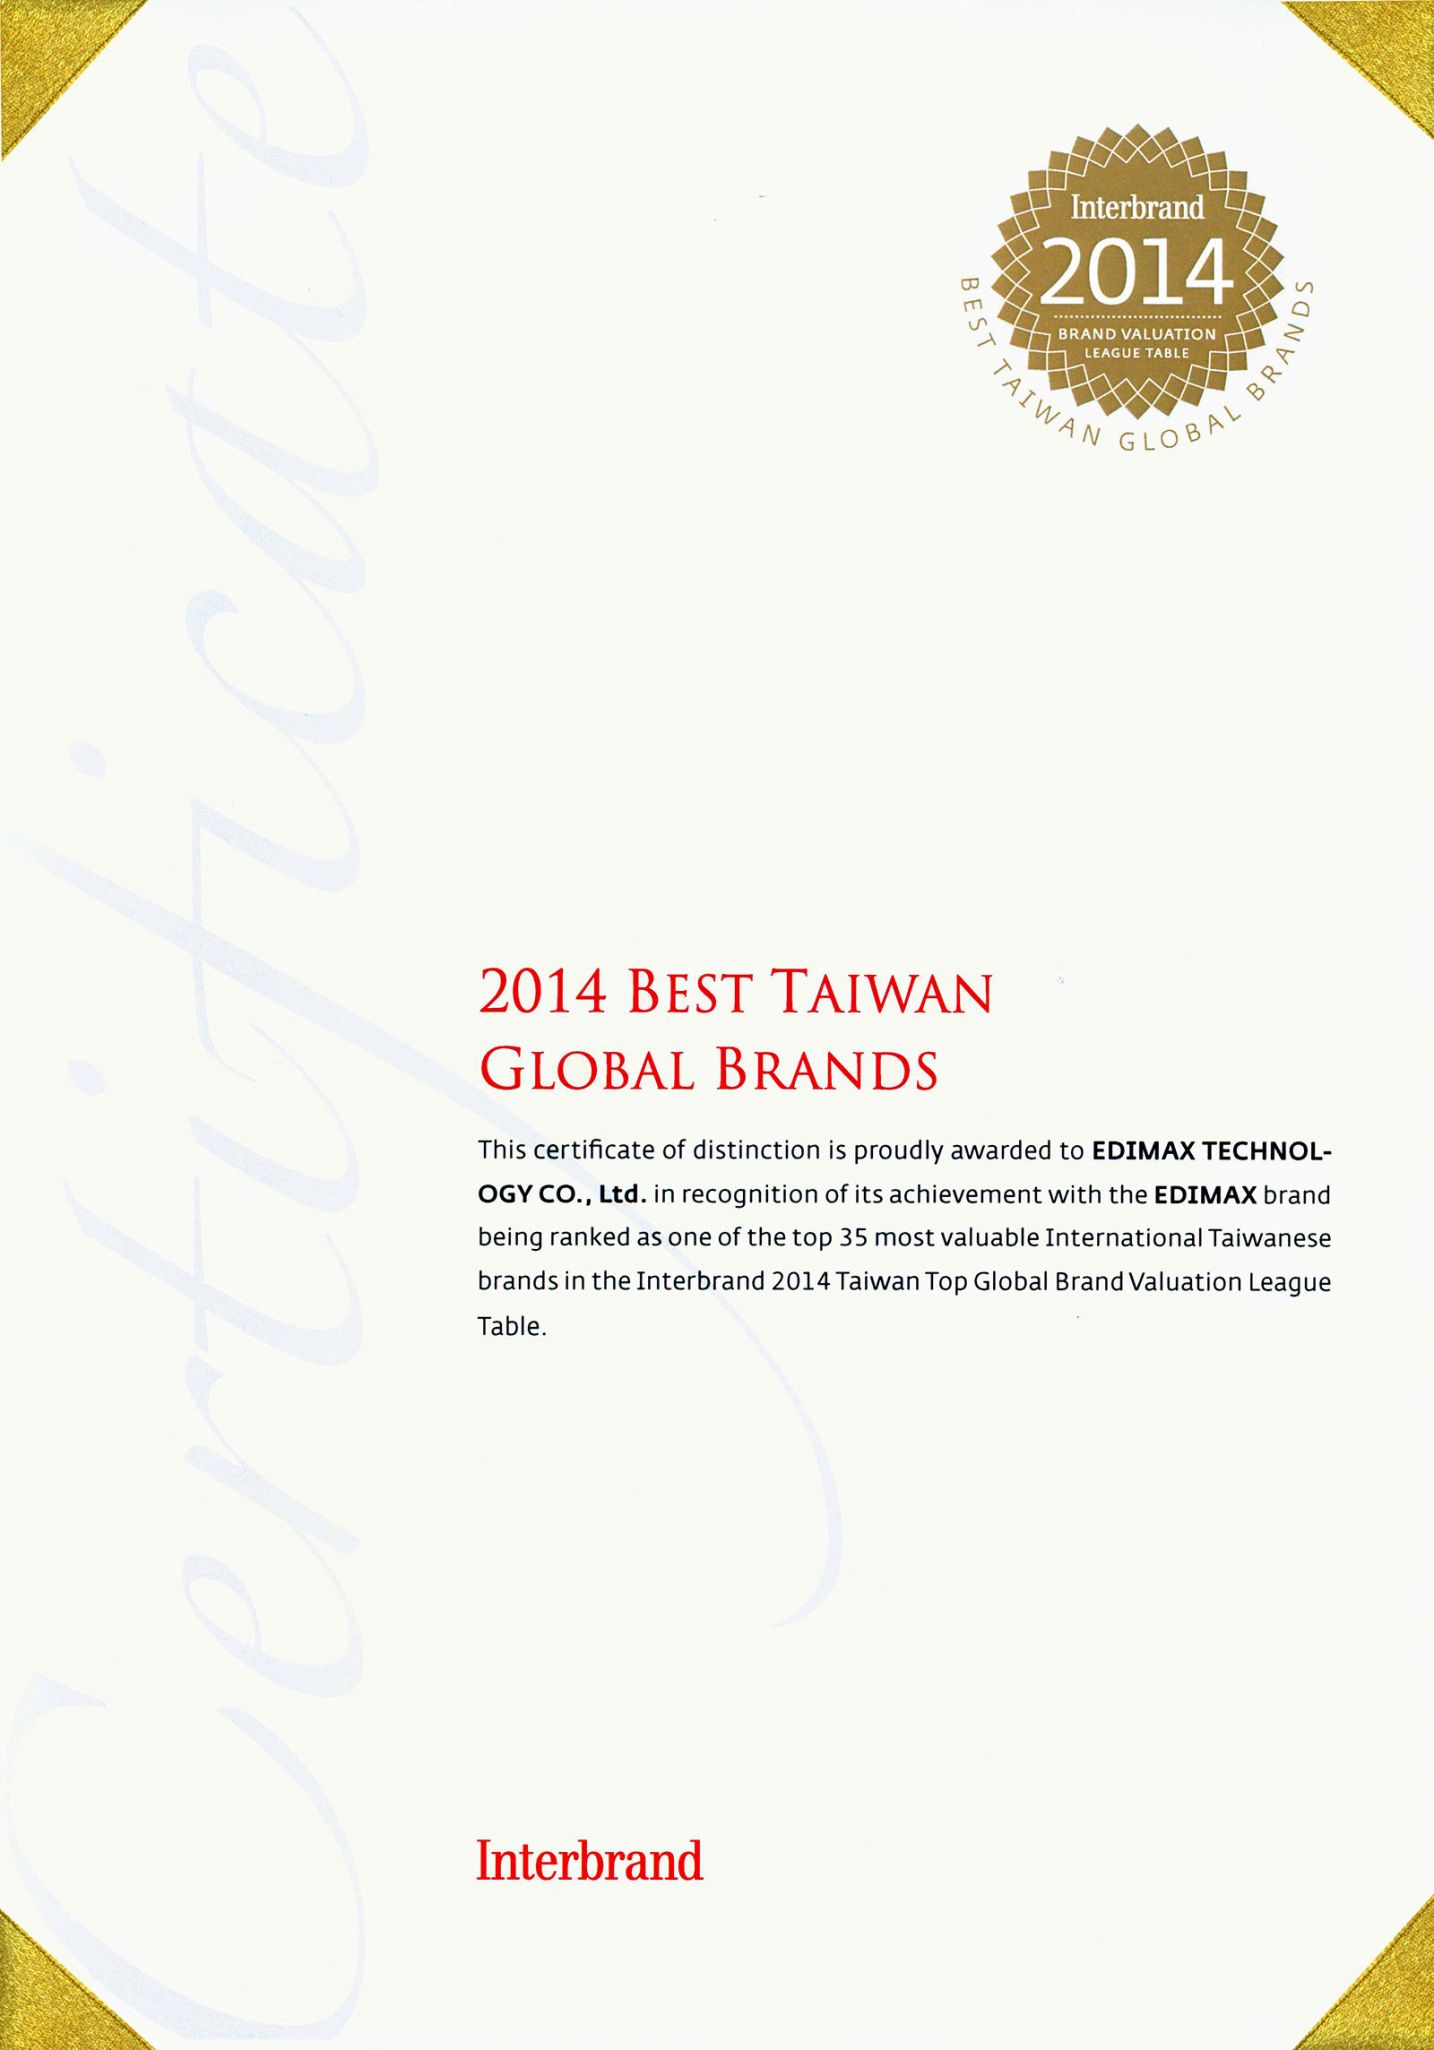 EDIMAX - Press Releases - Edimax Ranked by Interbrand as Top 35 Most